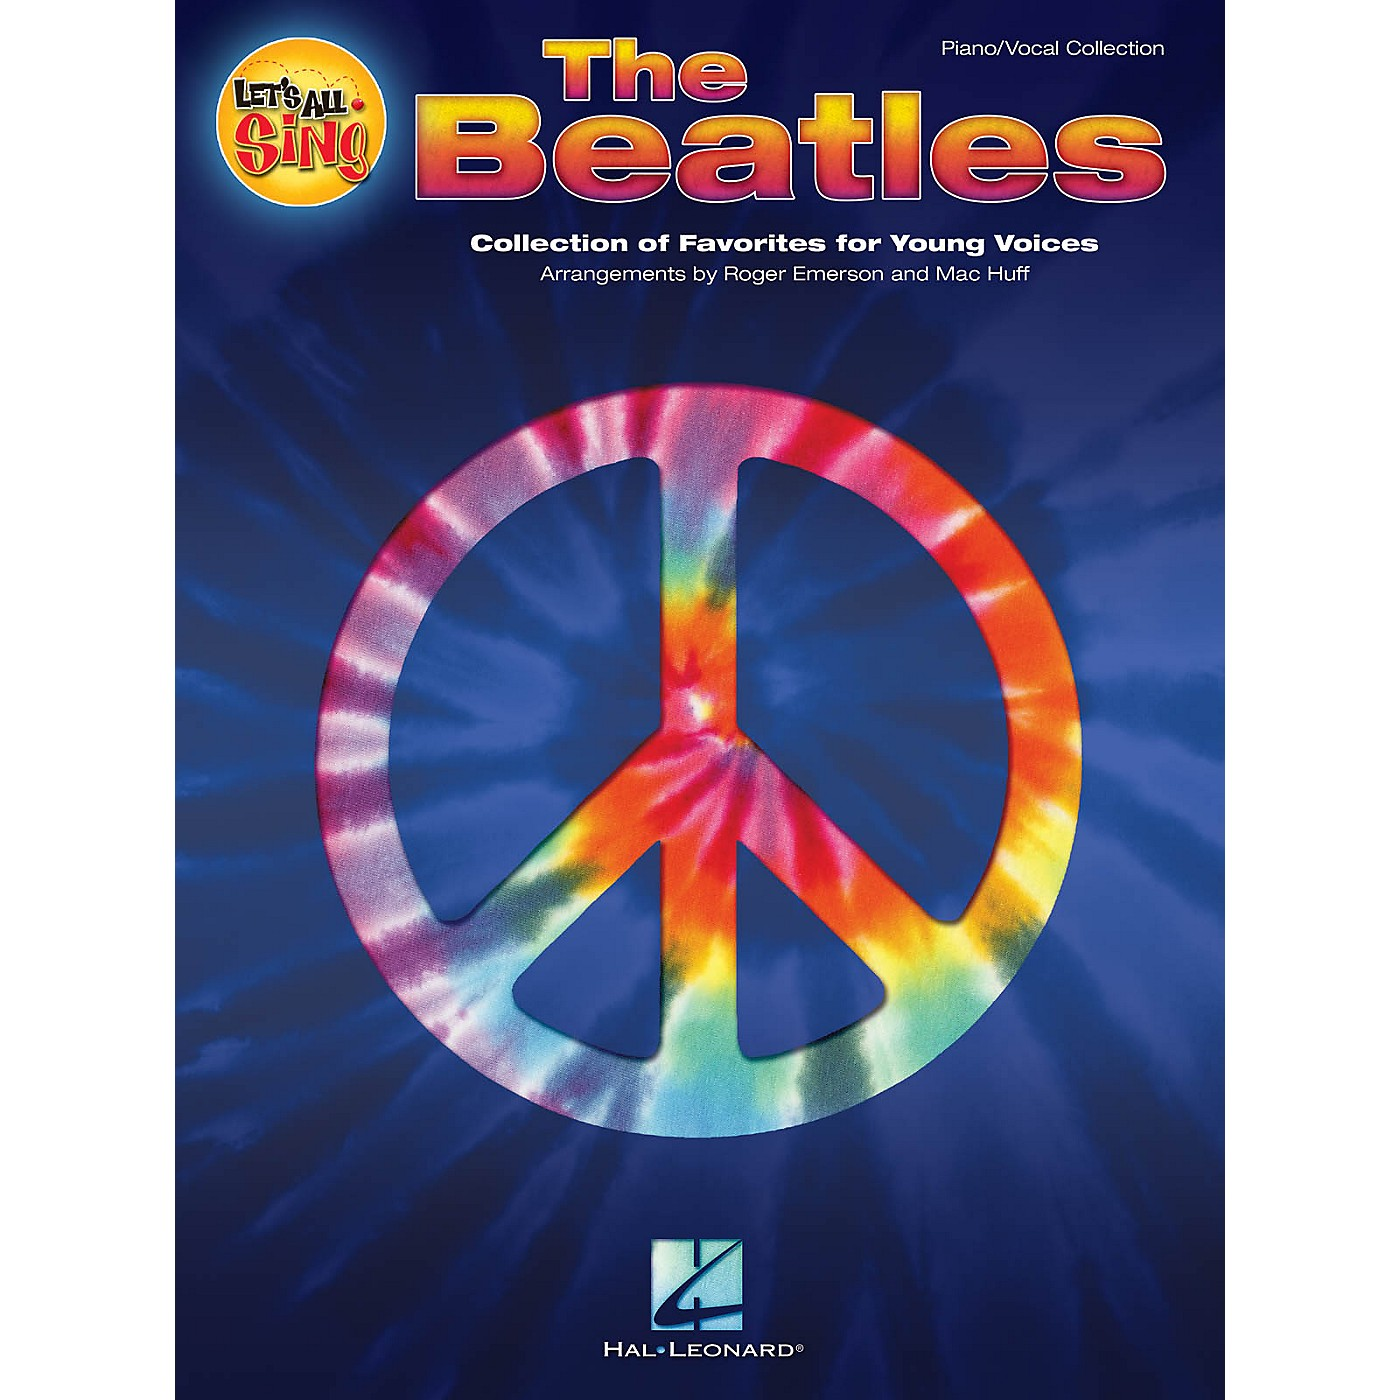 Hal Leonard Let's All Sing The Beatles Performance/Accompaniment CD Arranged by Roger Emerson thumbnail